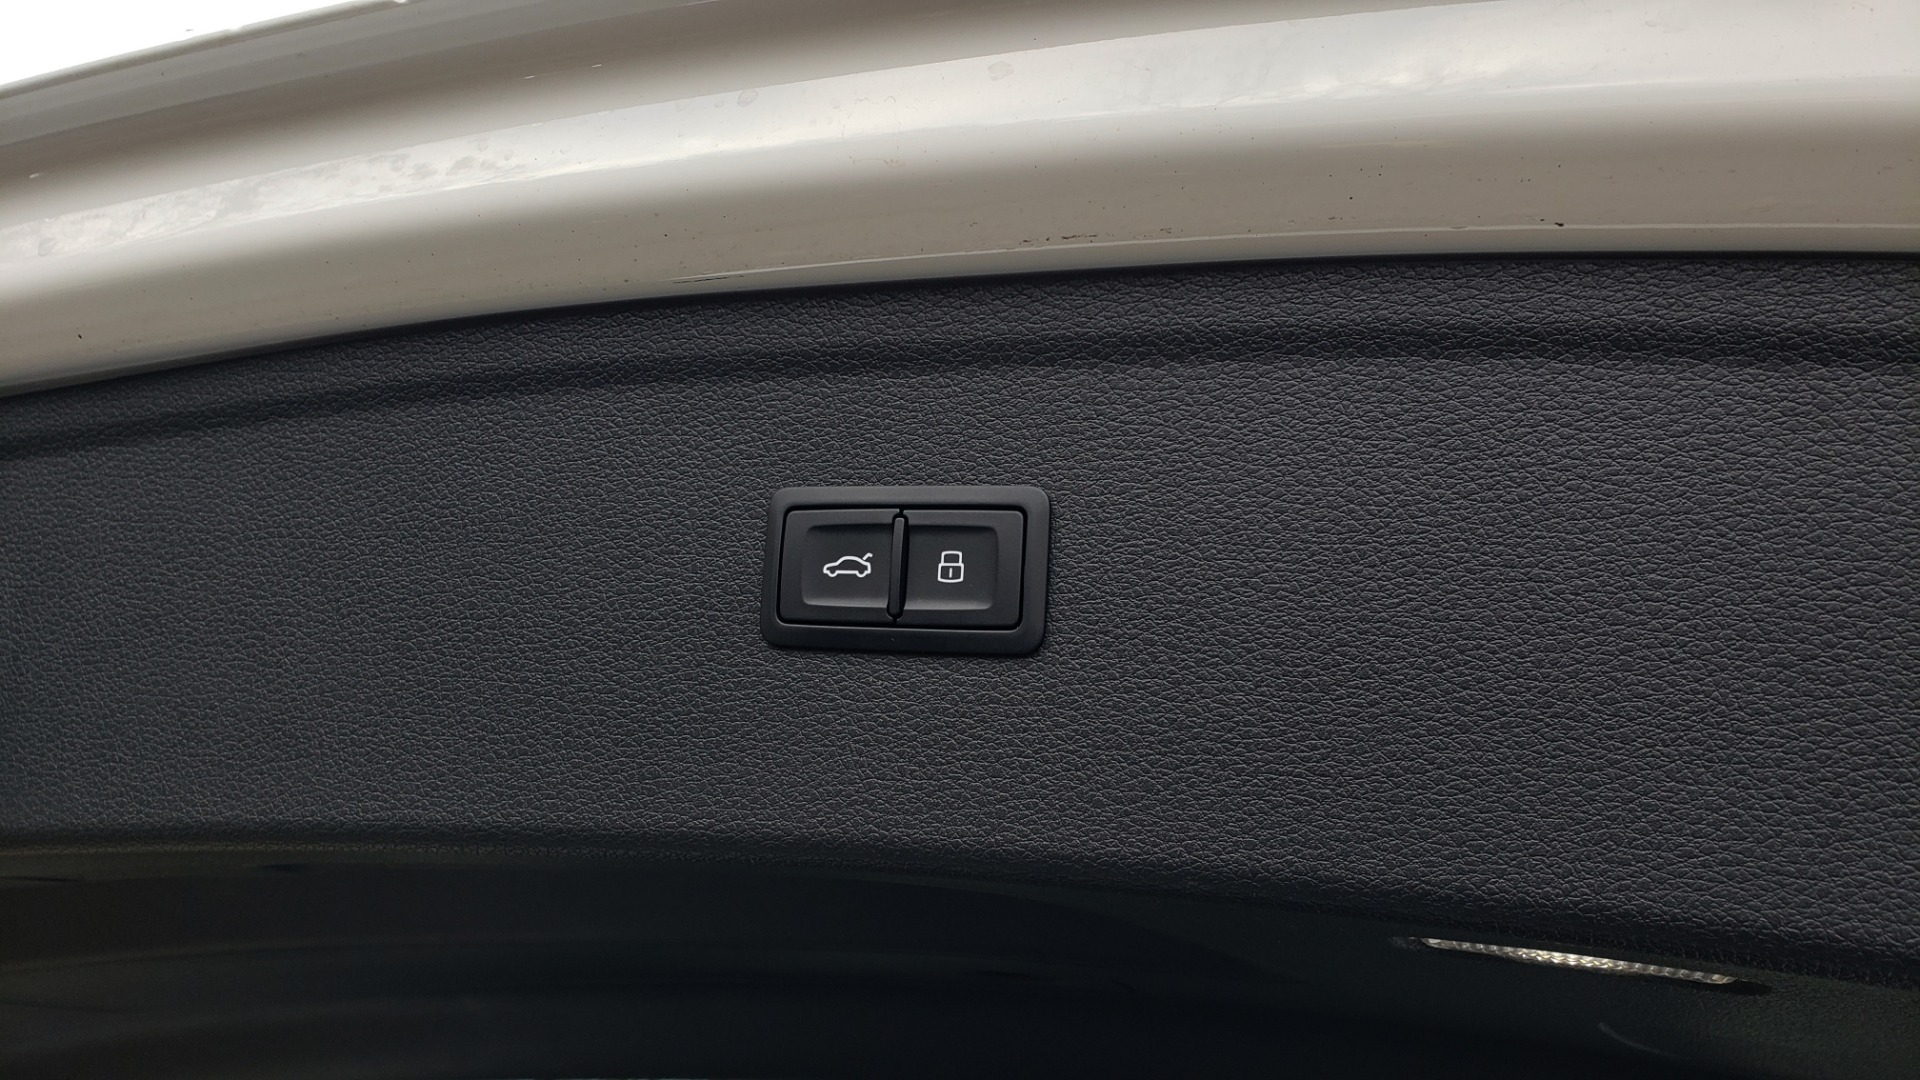 Used 2018 Audi Q5 PREMIUM PLUS / NAV PKG / SUNROOF / CLD WTHR / REARVIEW for sale Sold at Formula Imports in Charlotte NC 28227 19